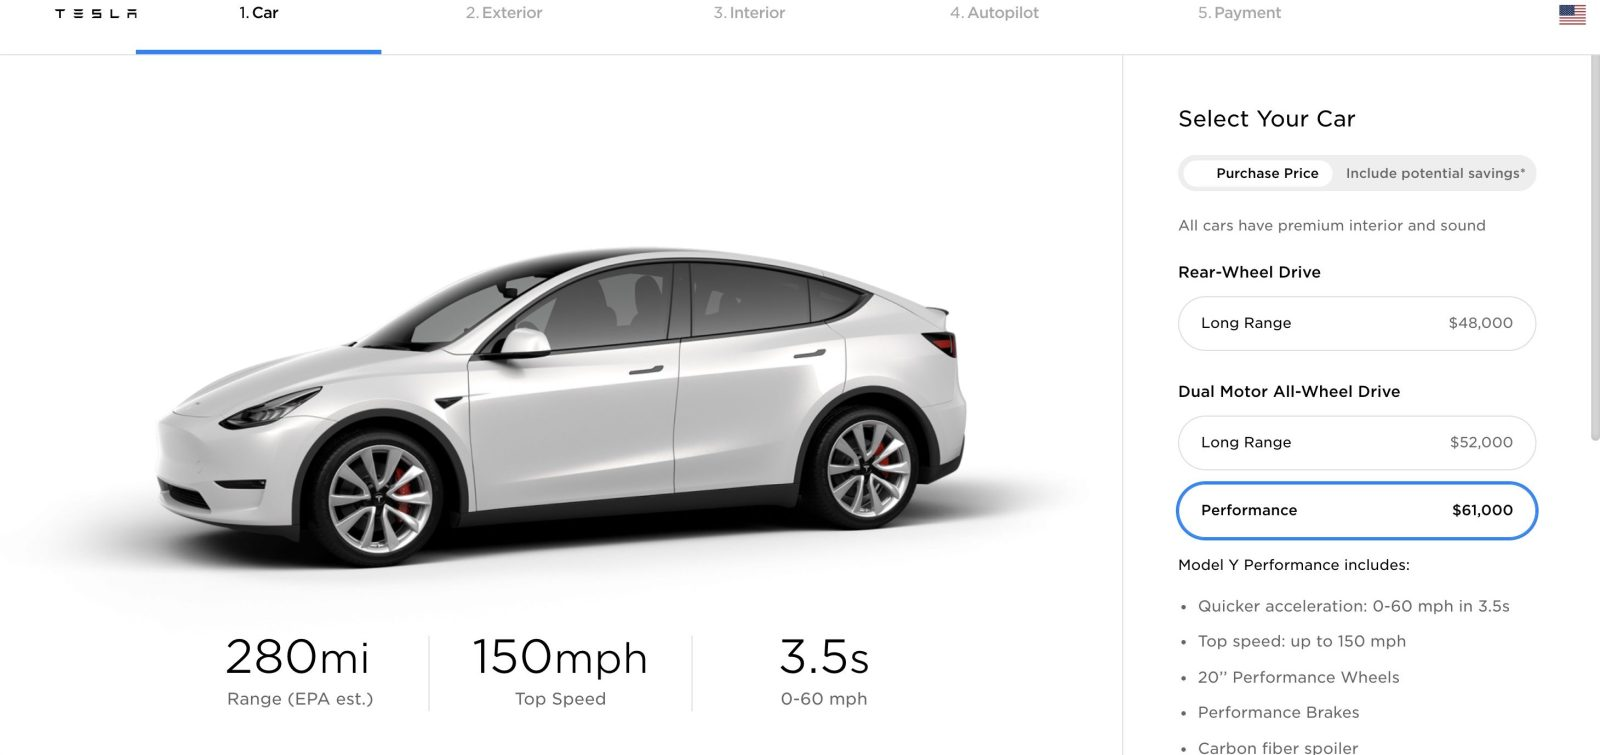 Tesla Model Y gets CARB certification, hinting at deliveries and range